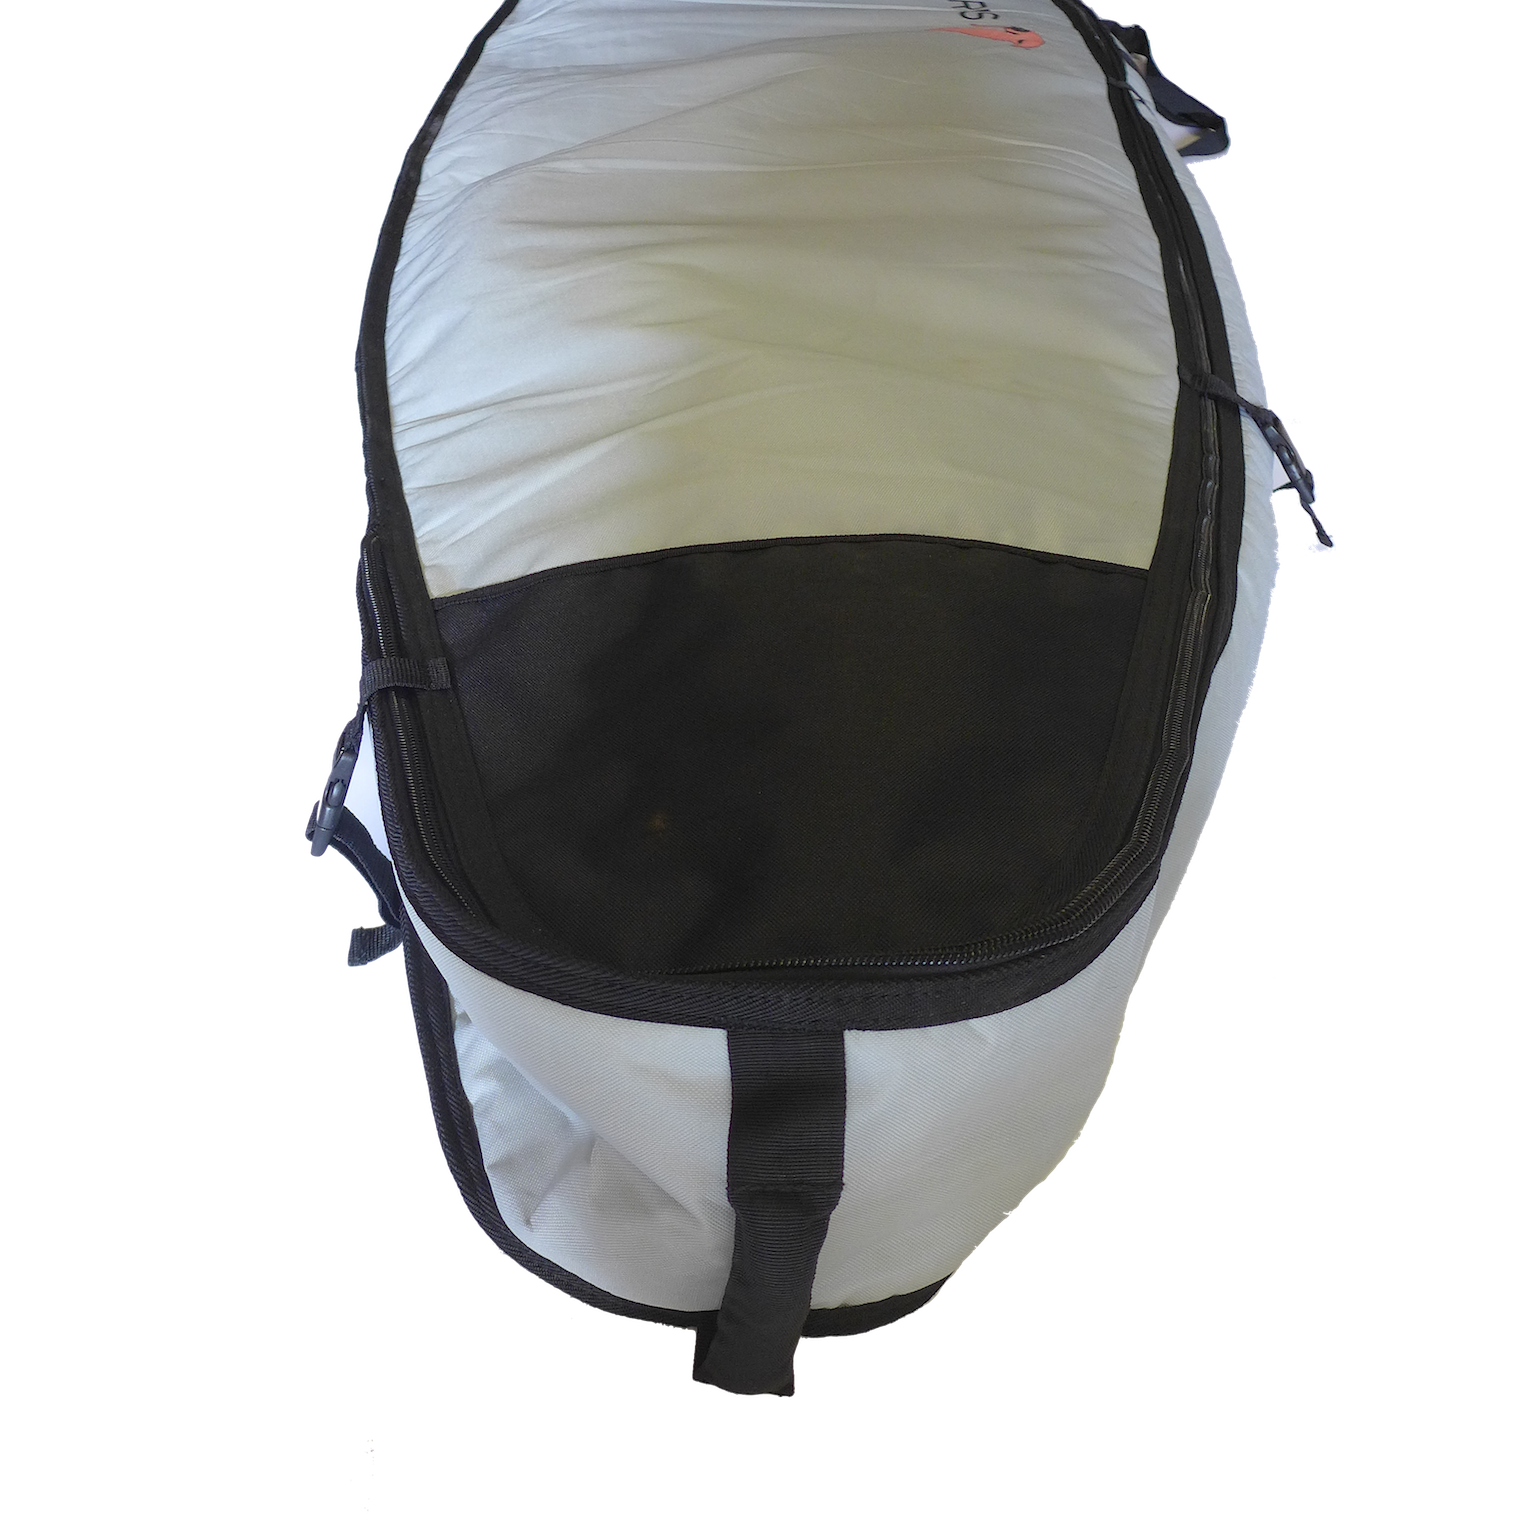 end handle on durable protective sup bag